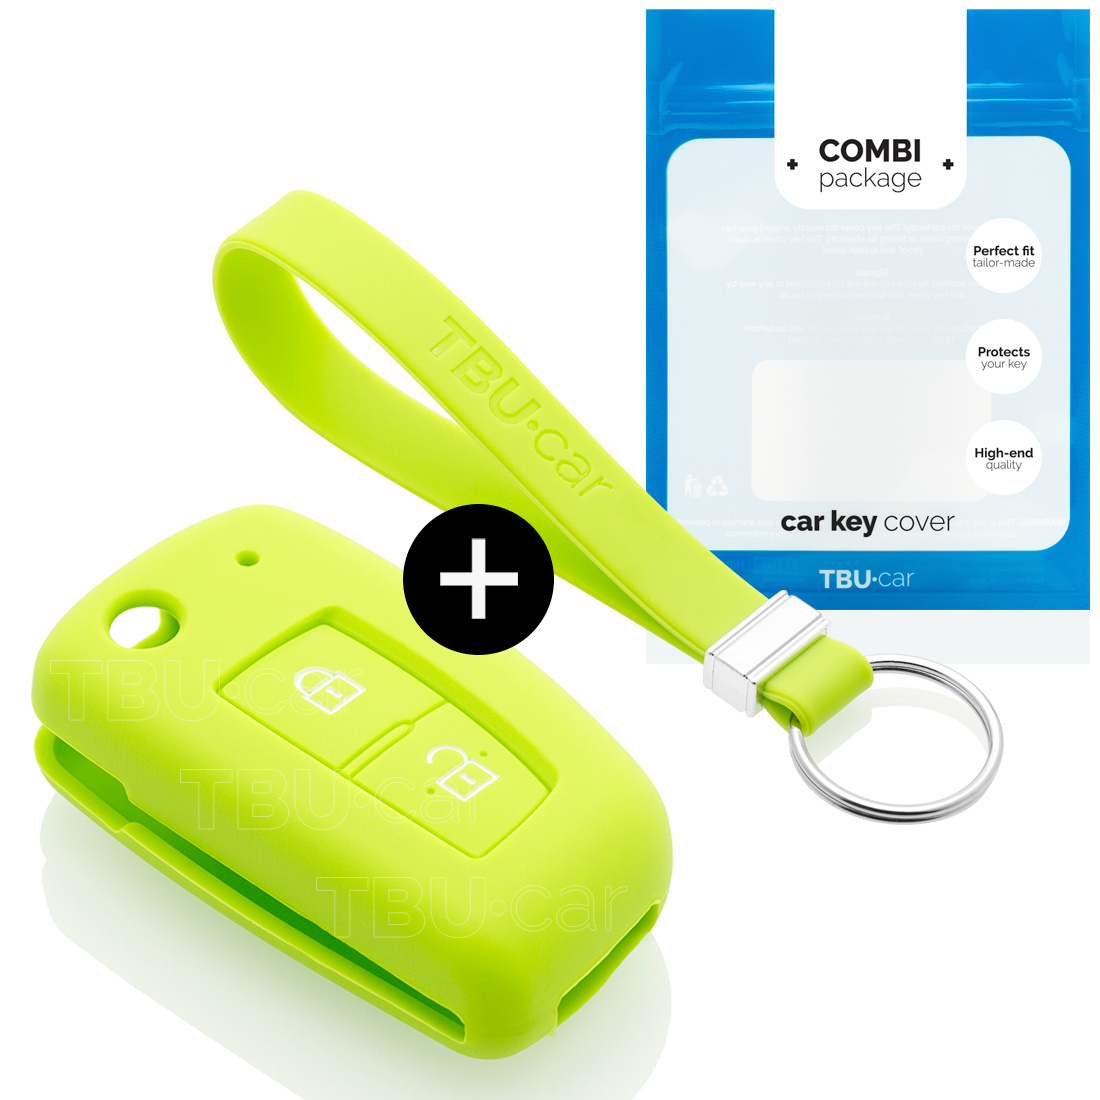 Nissan Car key cover - Silicone Protective Remote Key Shell - FOB Case Cover - Lime